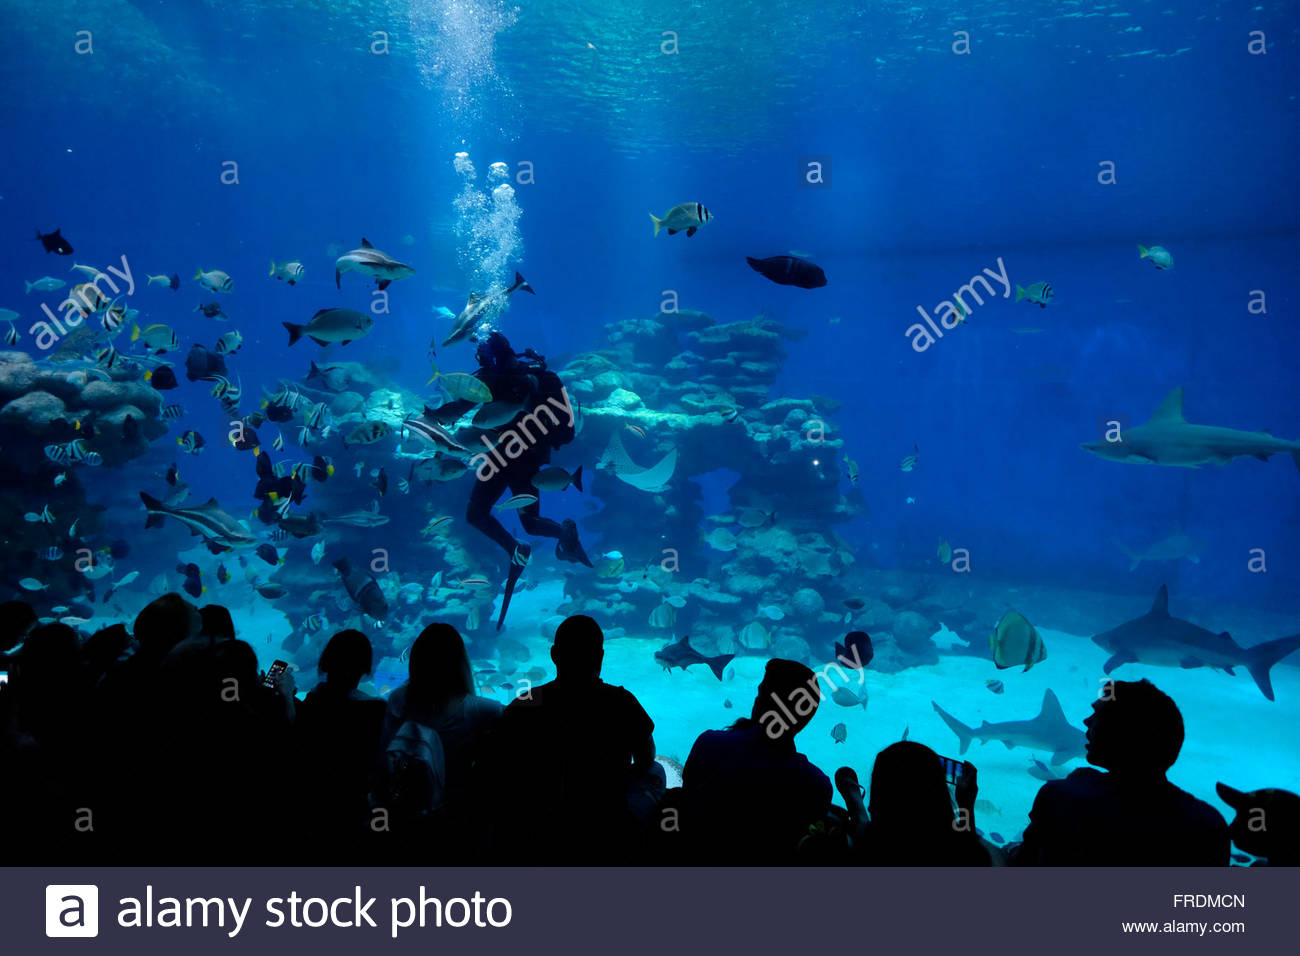 ors watching a diver feeding the sharks in the shark pool of stock photo ors watching a diver feeding the sharks in the shark pool of coral world underwater observatory aquarium located in the city of eilat at